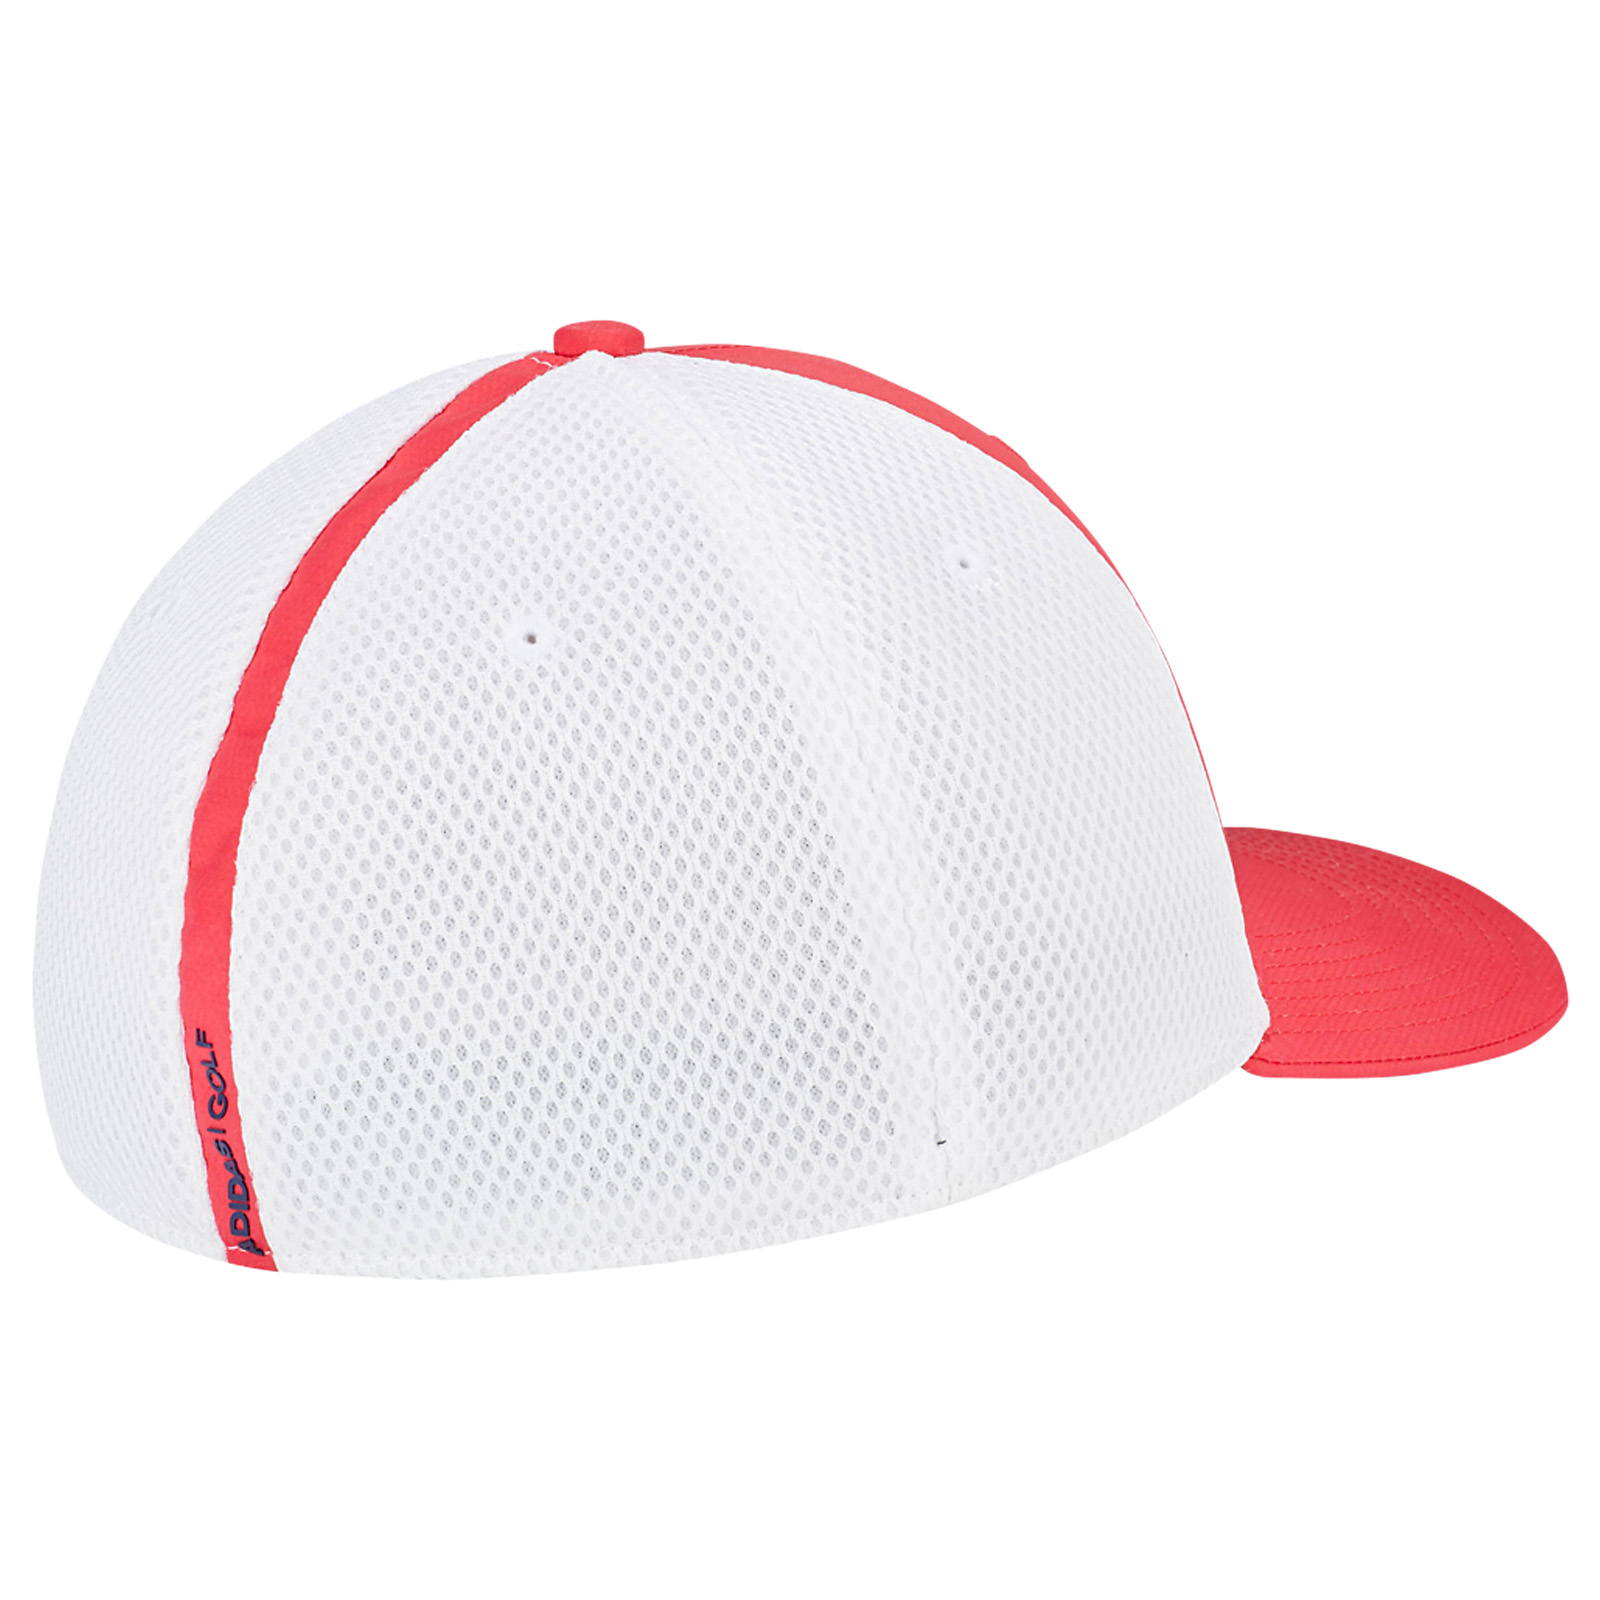 Adidas-Mens-A-Stretch-Tour-Fitted-Golf-Cap-Breathable-Mesh-Baseball-Hat Indexbild 13